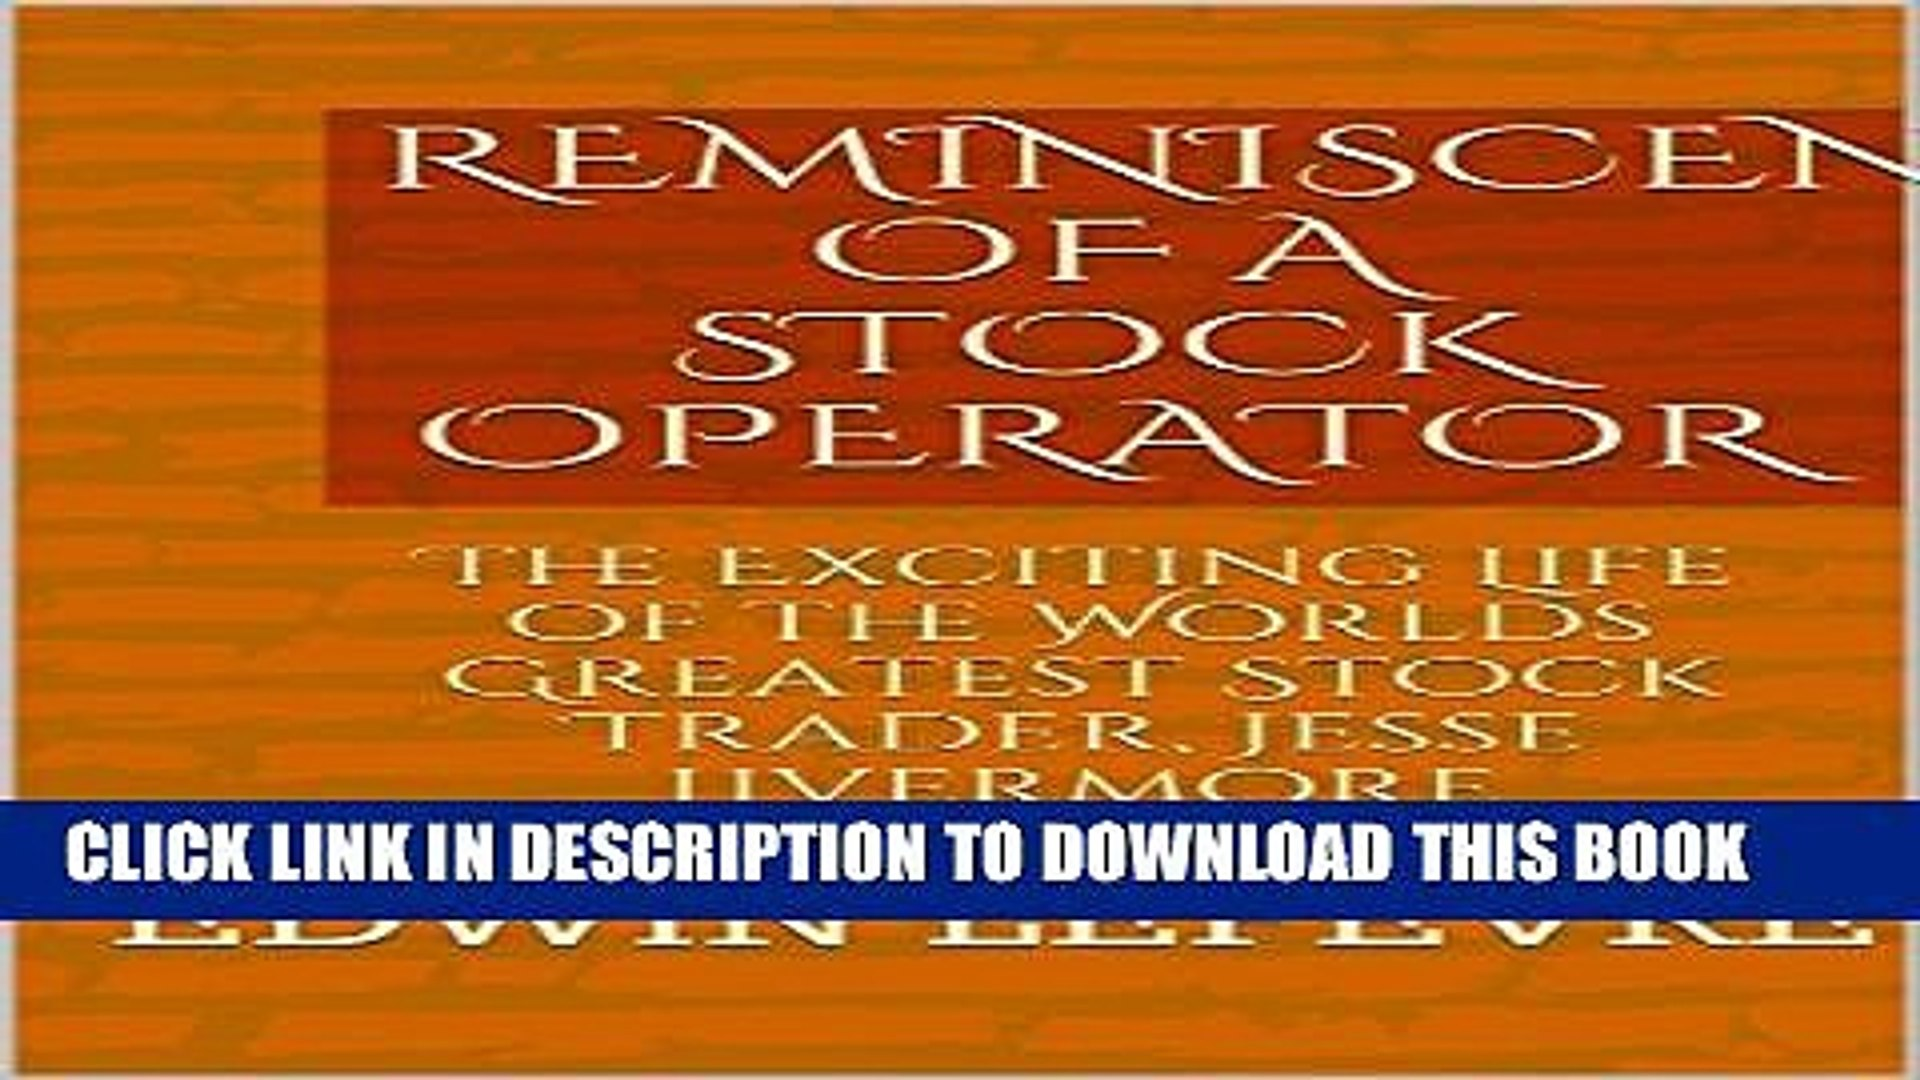 [PDF] REMINISCENCES OF A STOCK OPERATOR: The Exciting Life of the Worlds Greatest Stock Trader,